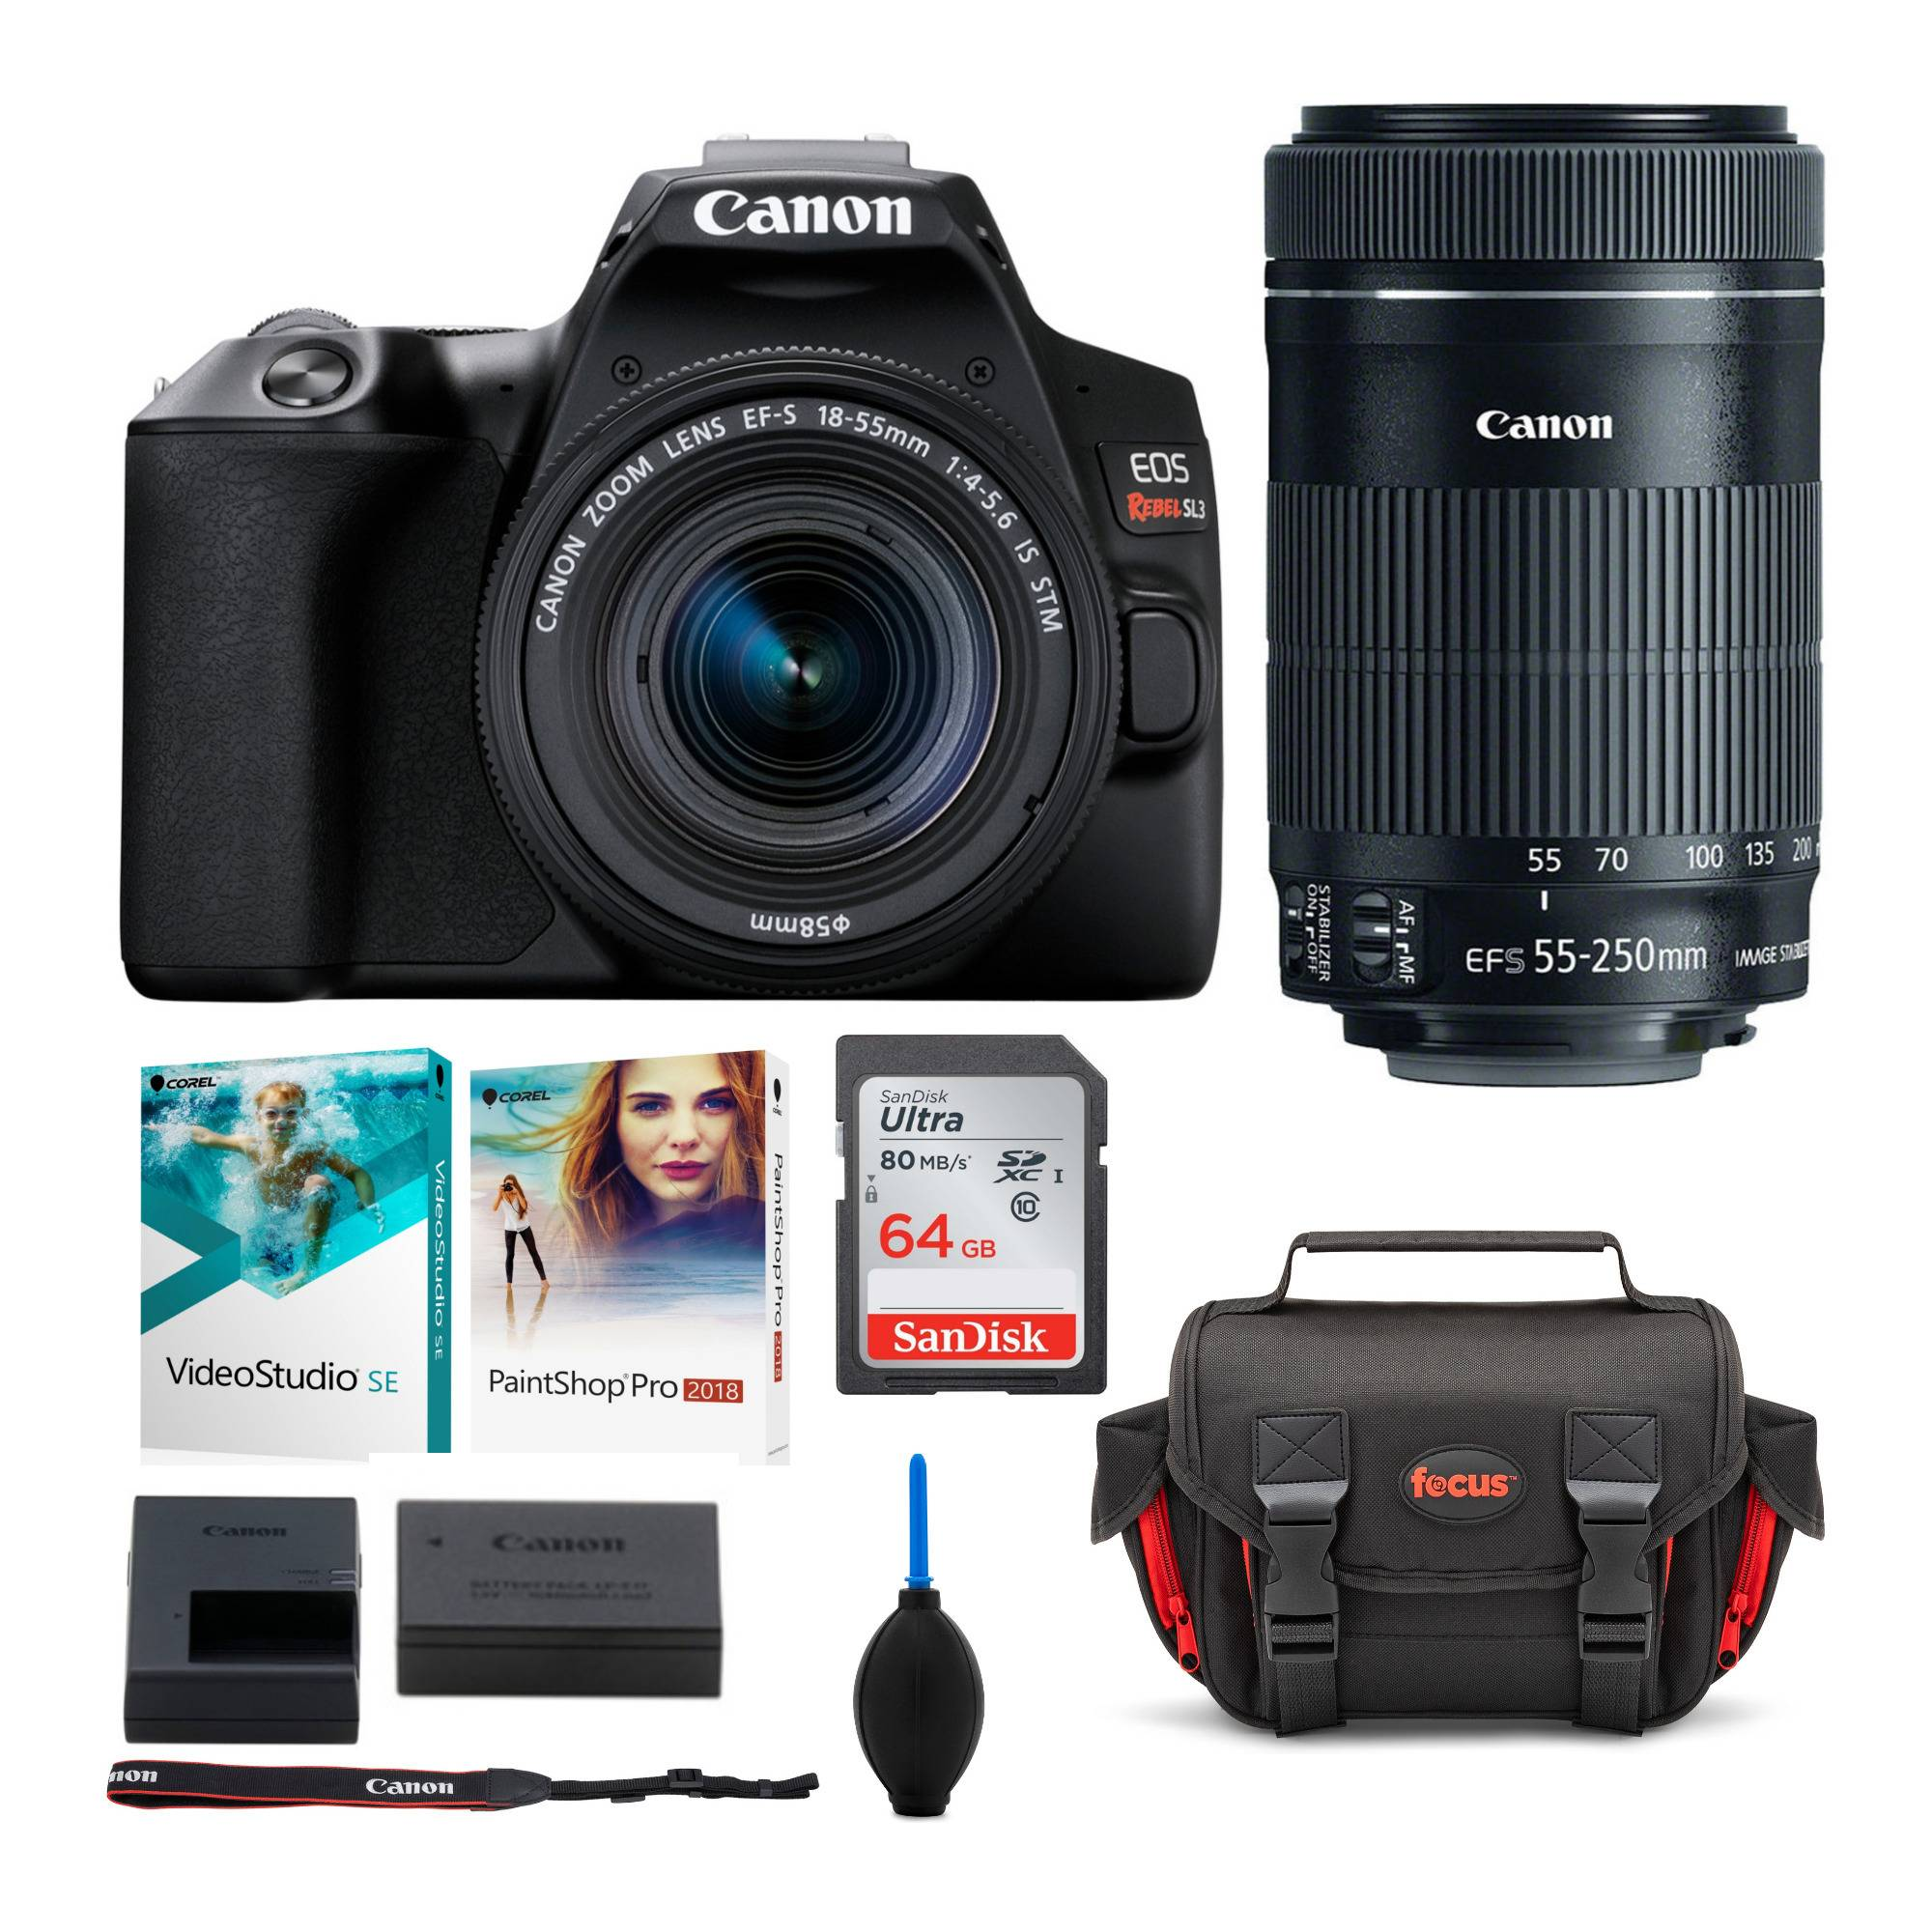 Canon EOS Rebel SL3 DSLR Camera with 18-55mm and 55-250mm Lenses Deluxe Bundle in Black